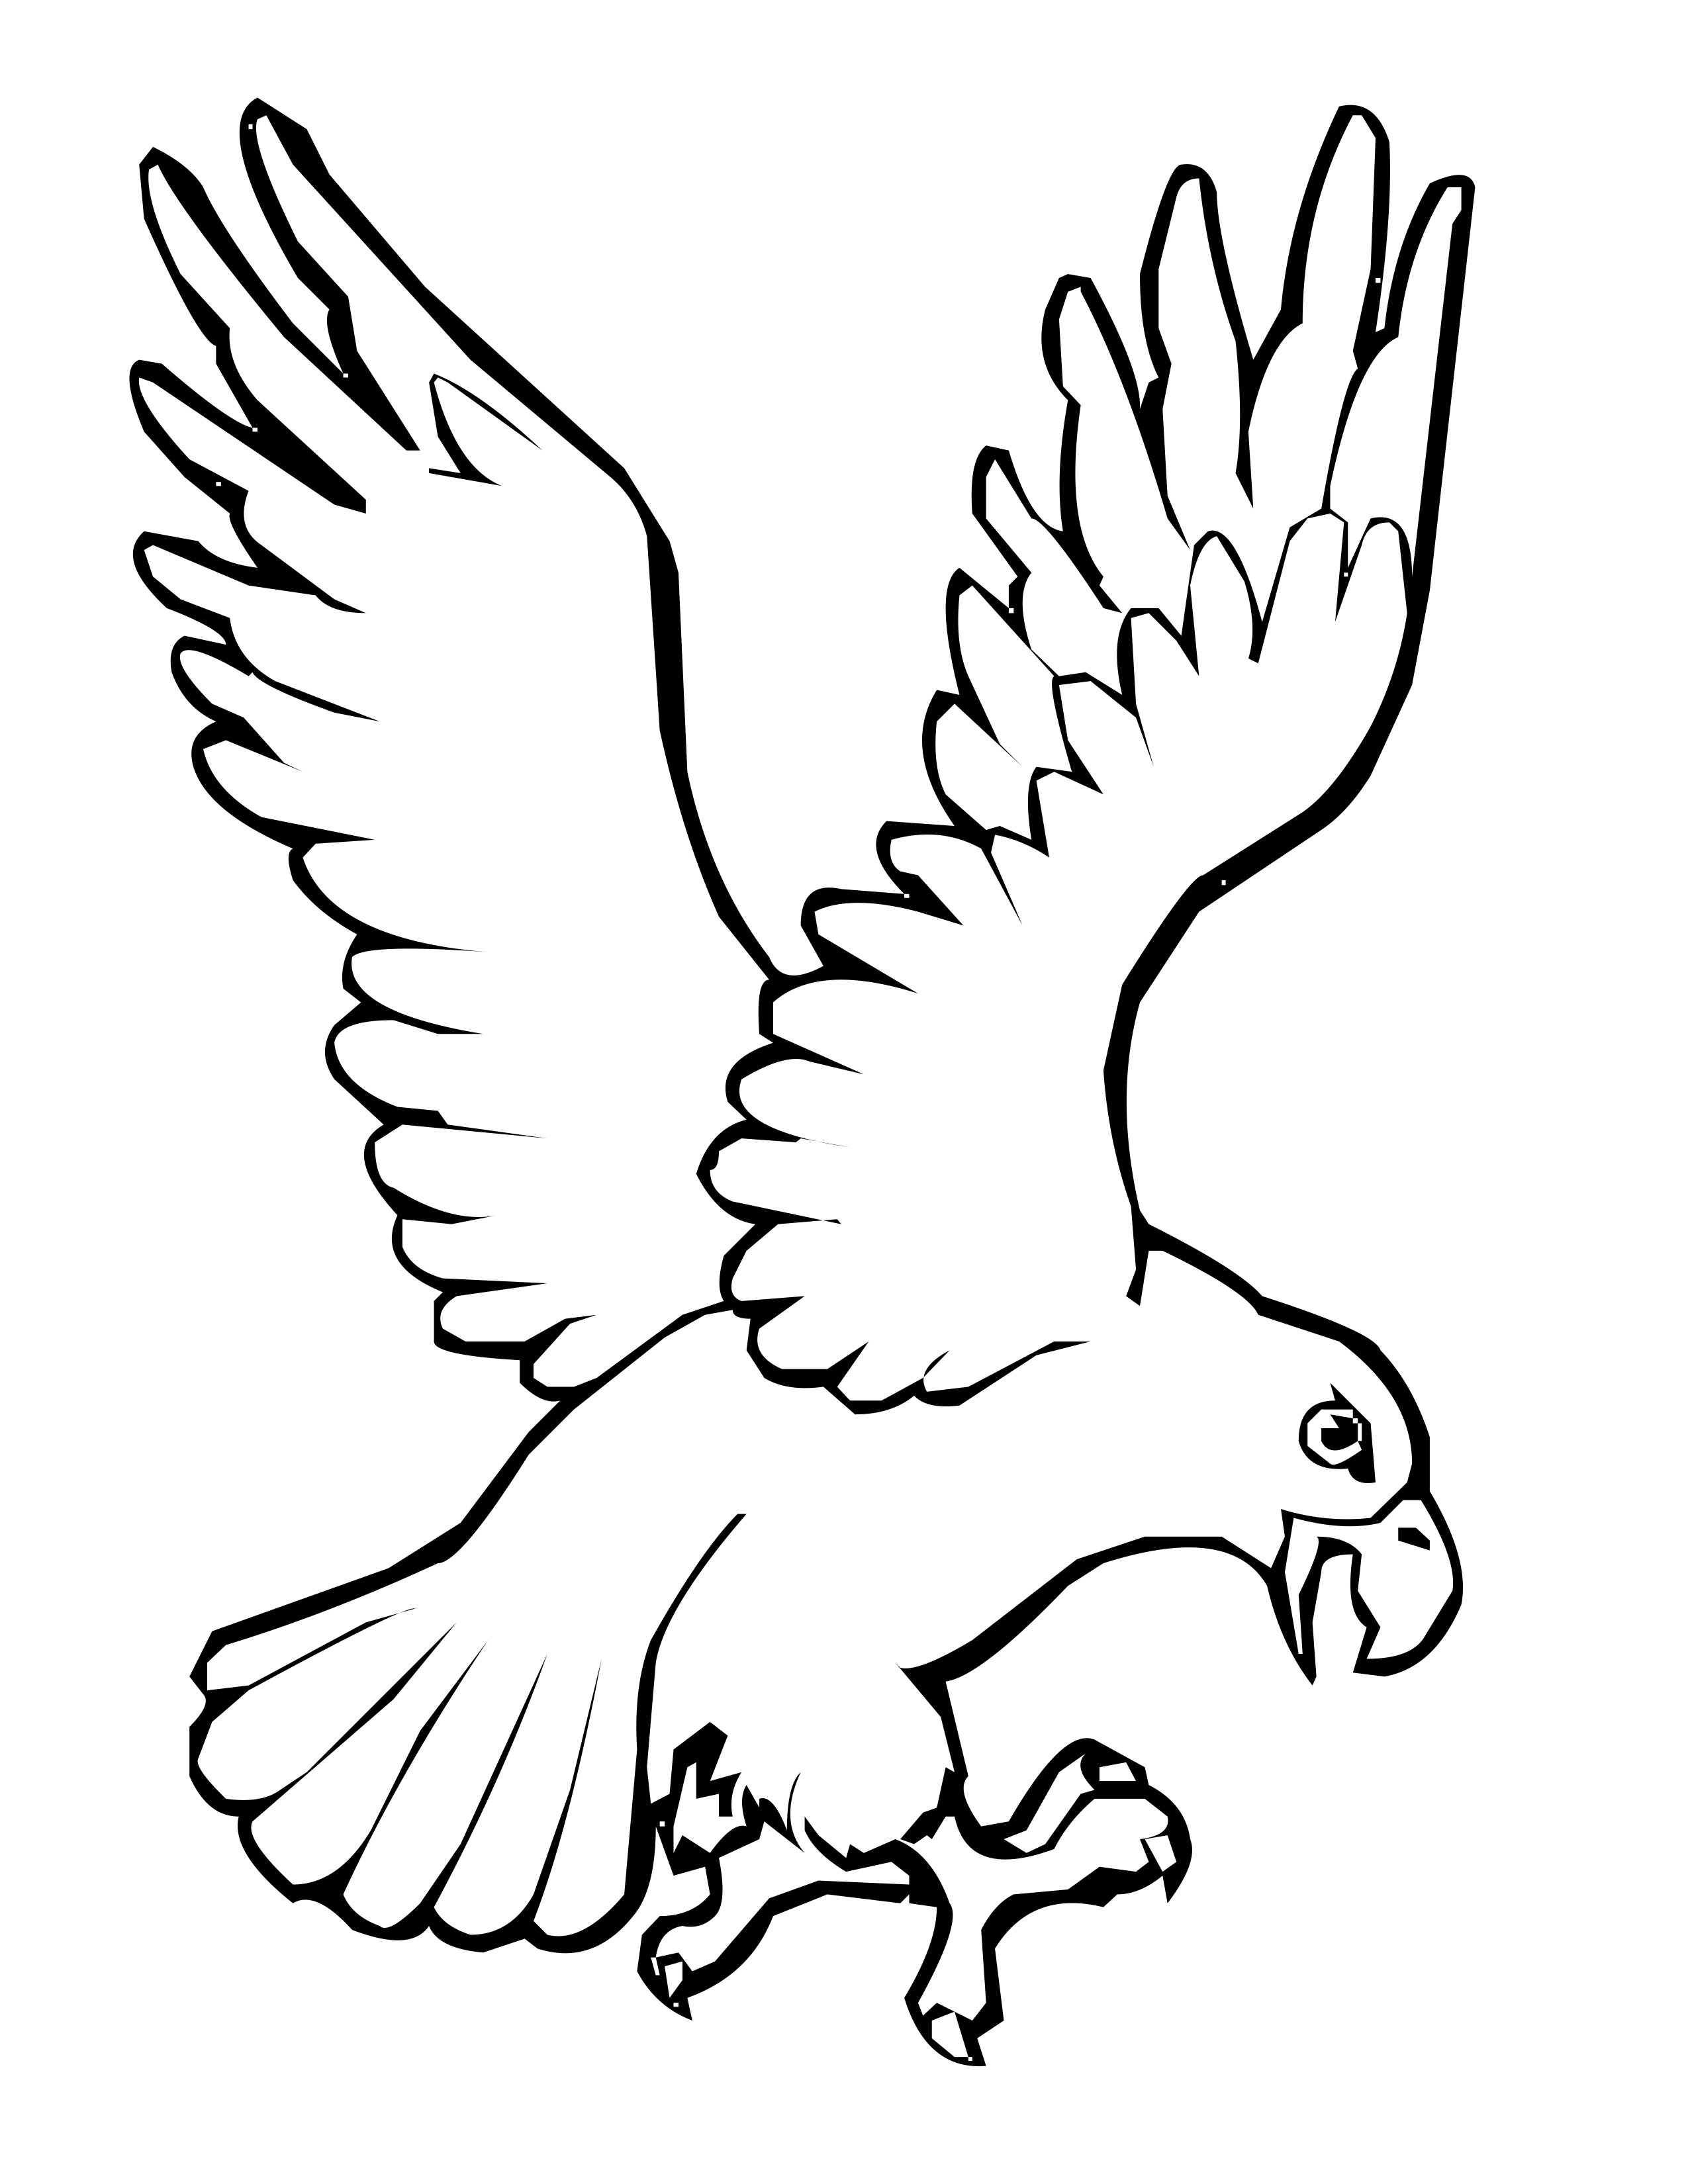 bird coloring pages eagle bird coloring pages to printable pages coloring bird